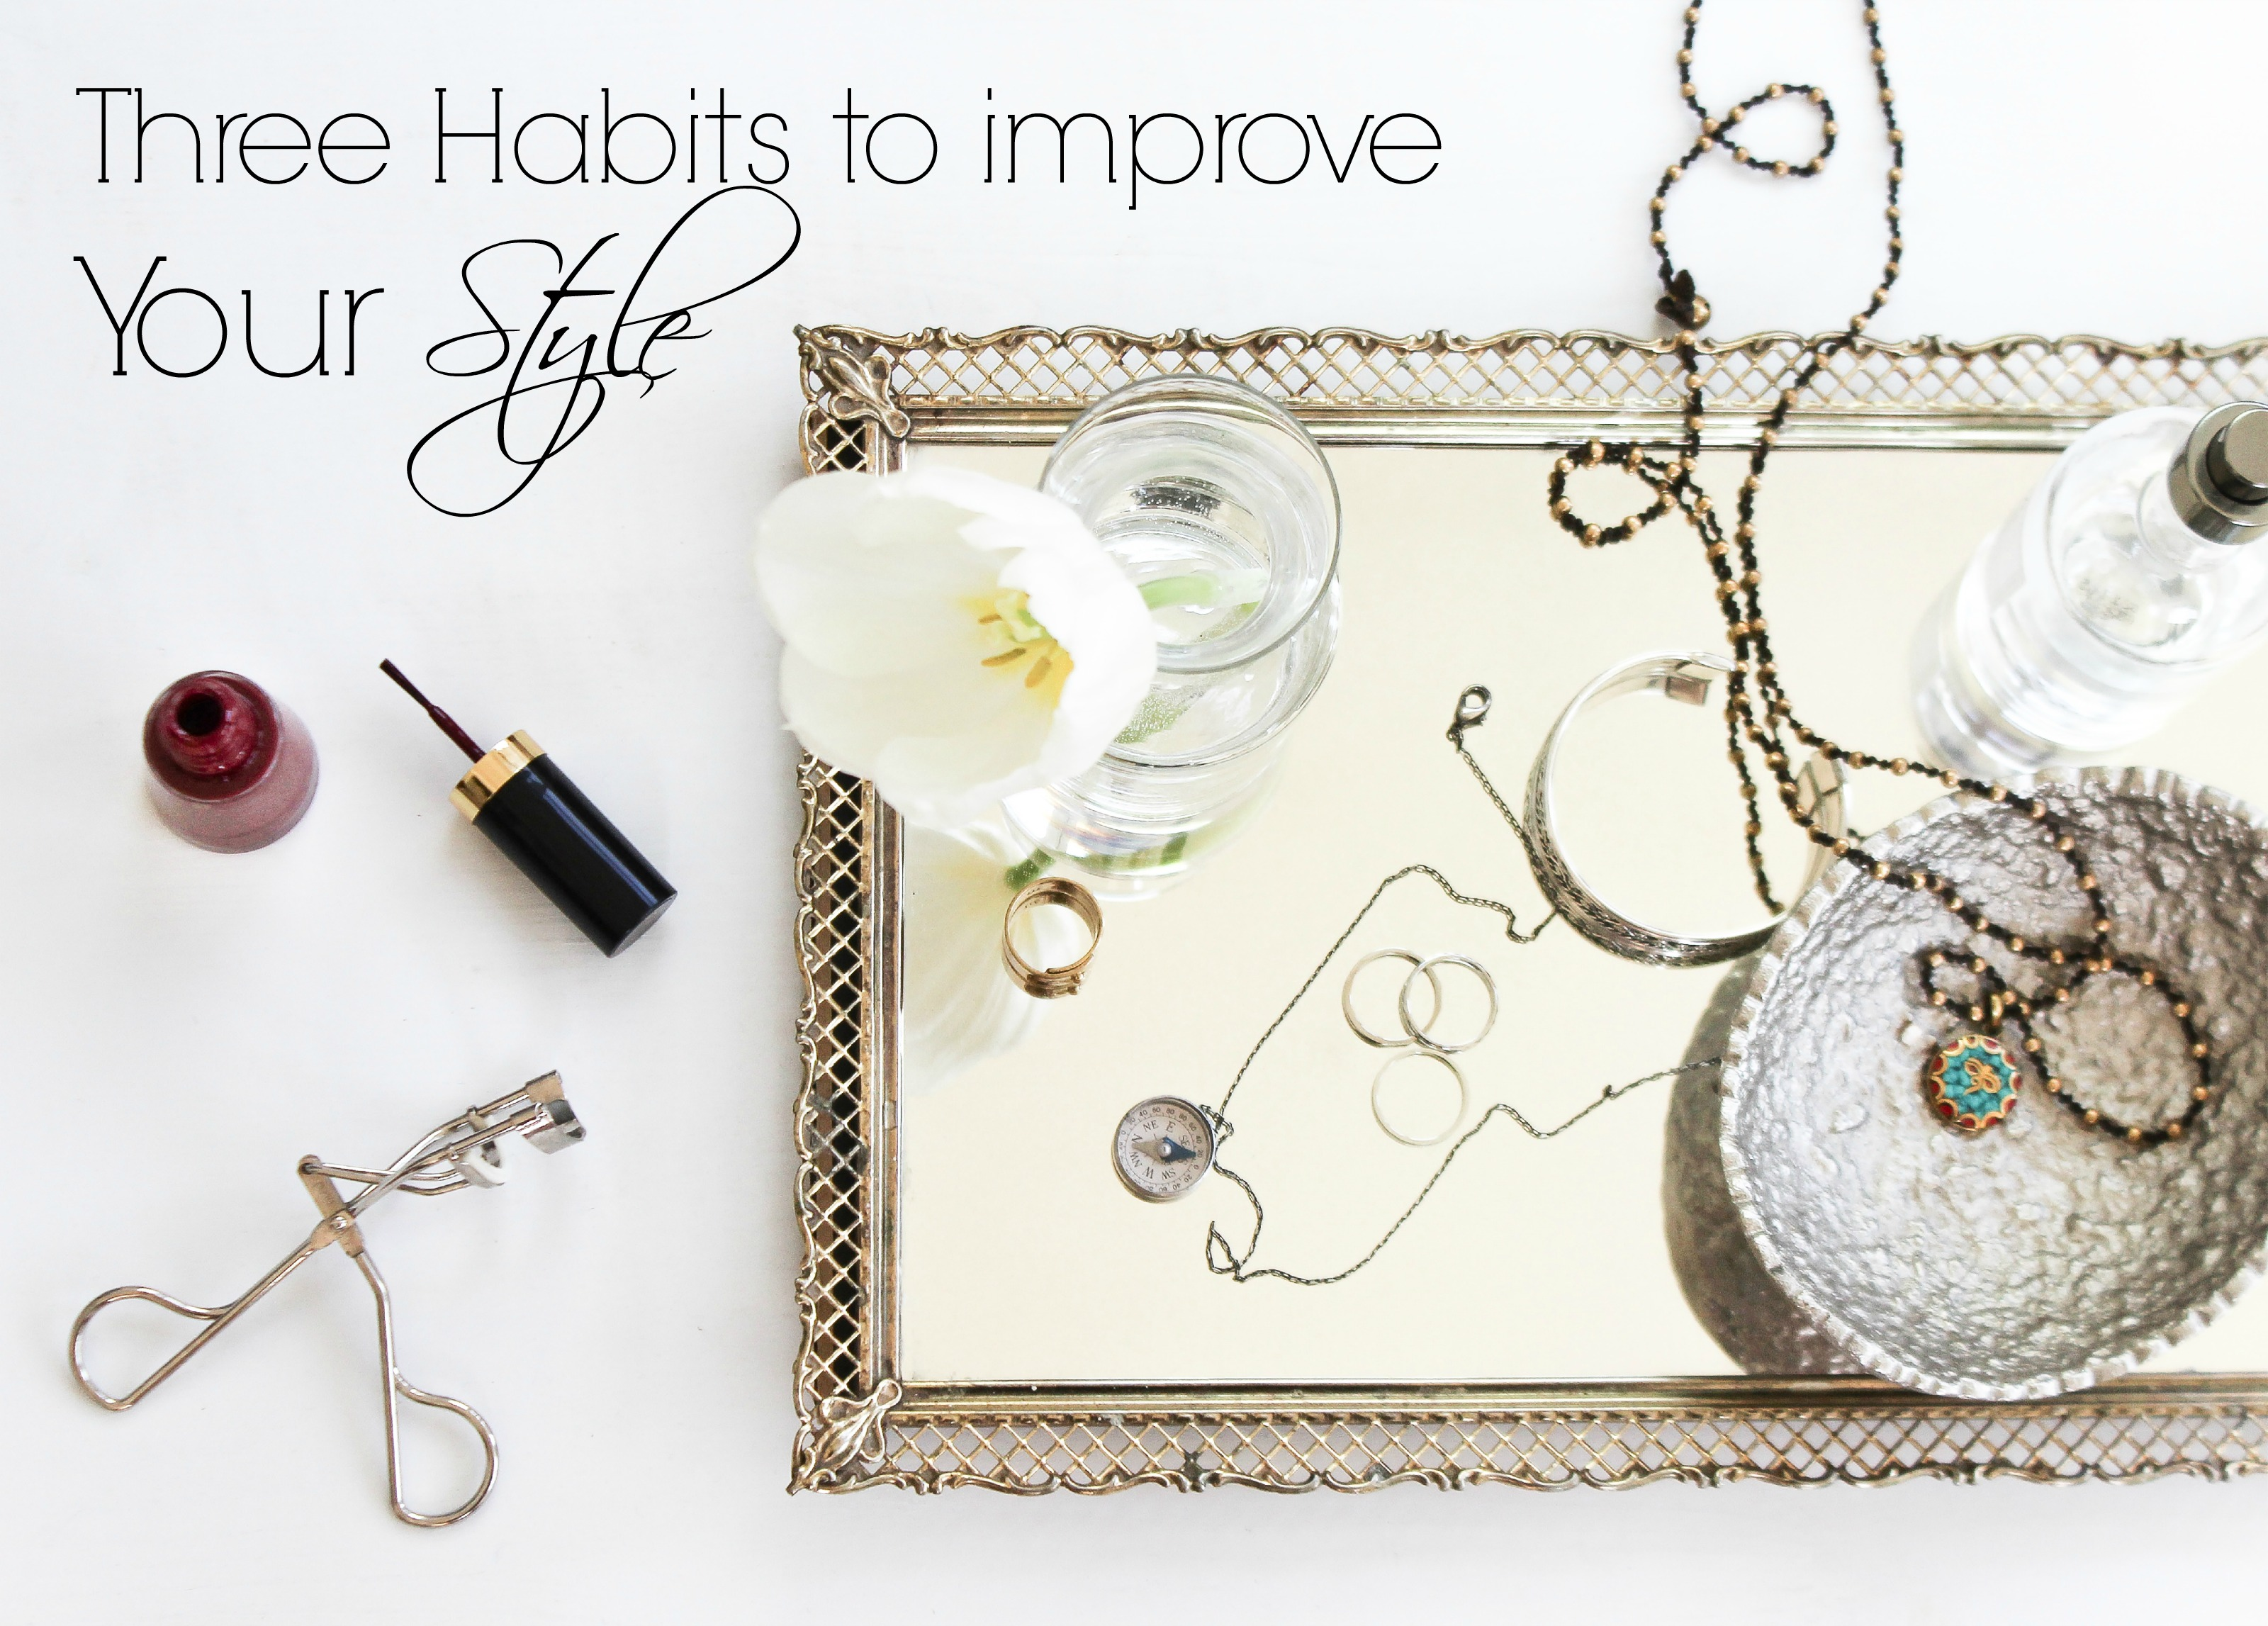 style, habits to improve your style, knoxville fashion blogger, fashion blogger, beauty blogger, improve your style, how to improve your style